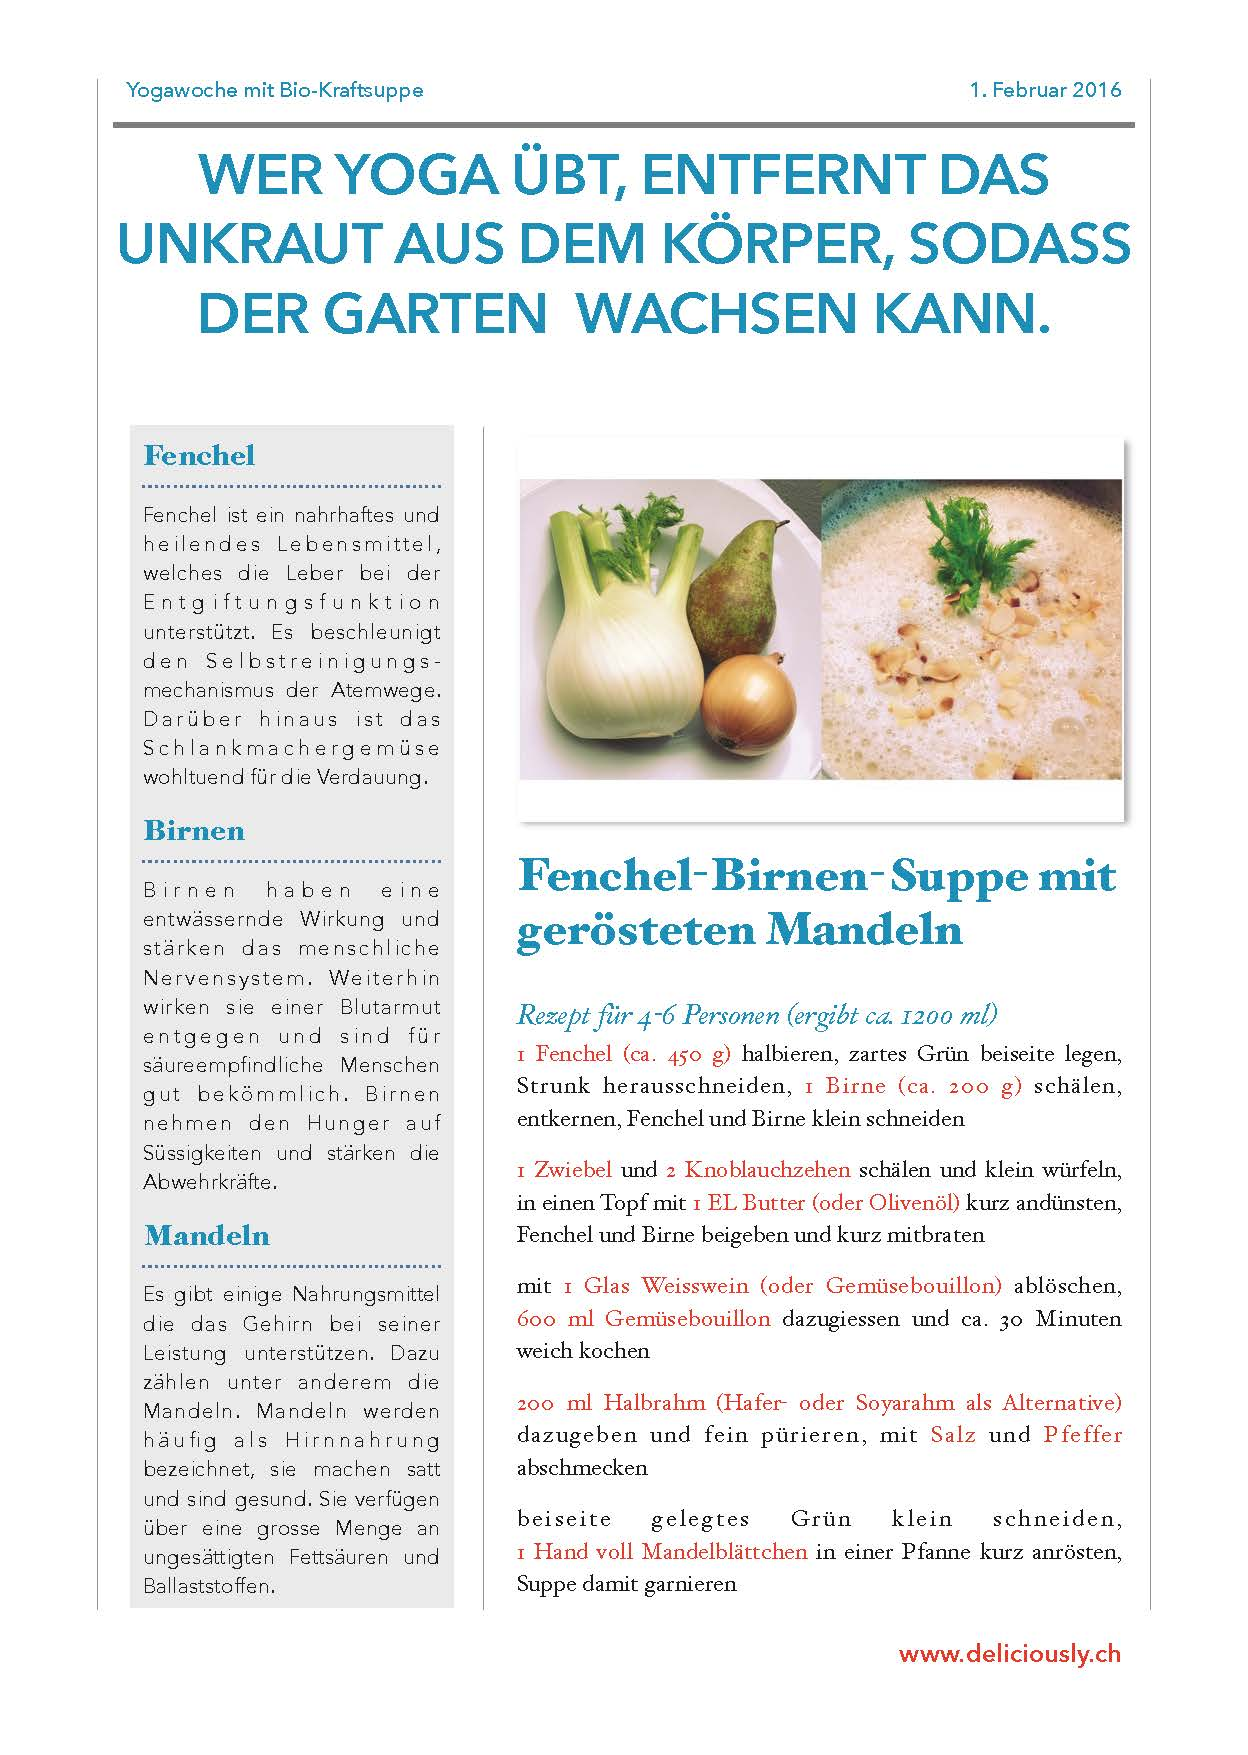 Fenchel-Birnen-Suppe